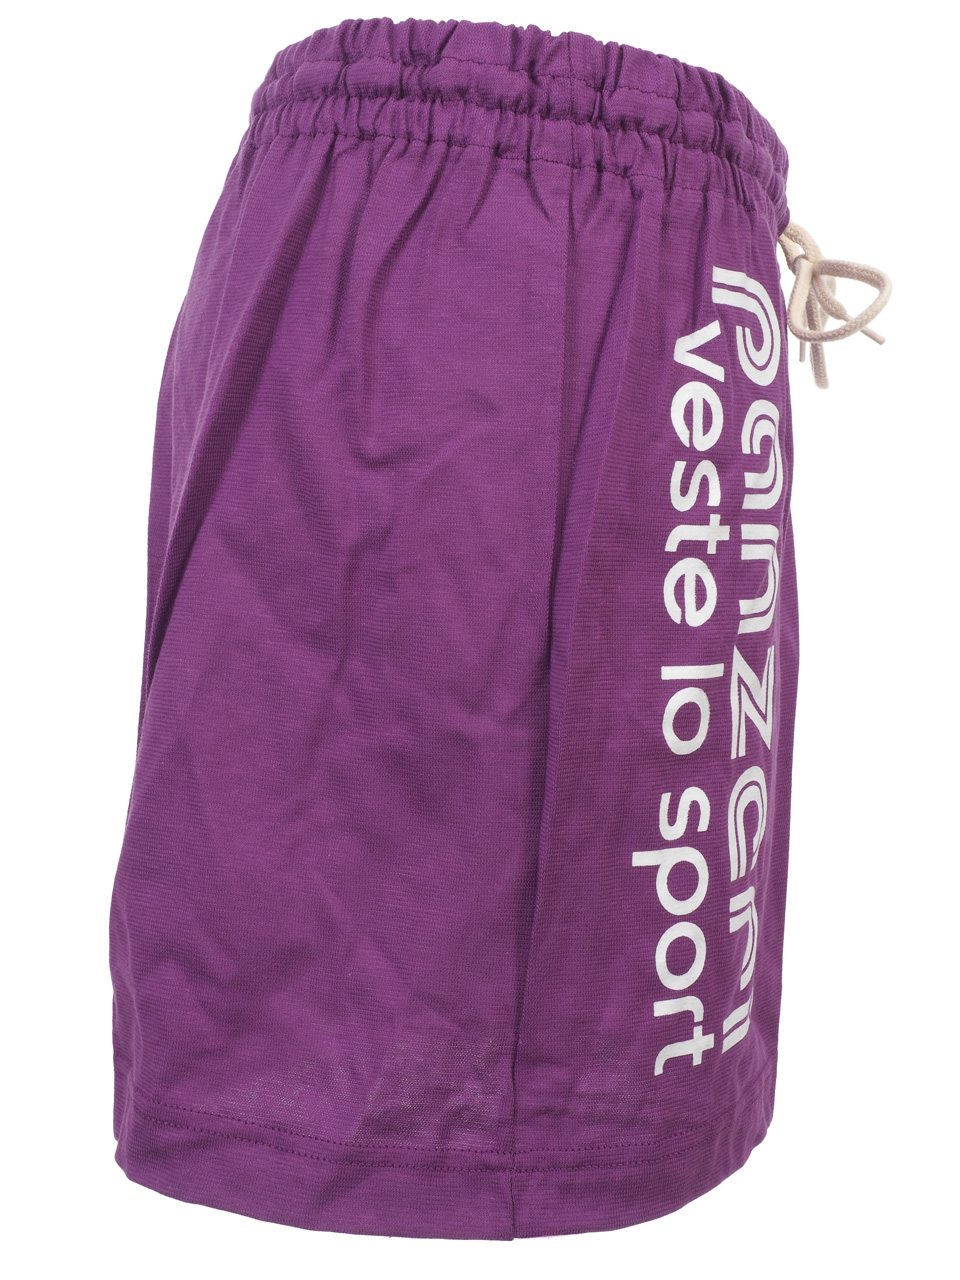 Shorts-Multi-Panzeri-Plain-a-Purple-Jersey-Shorts-Purple-30929-New thumbnail 3